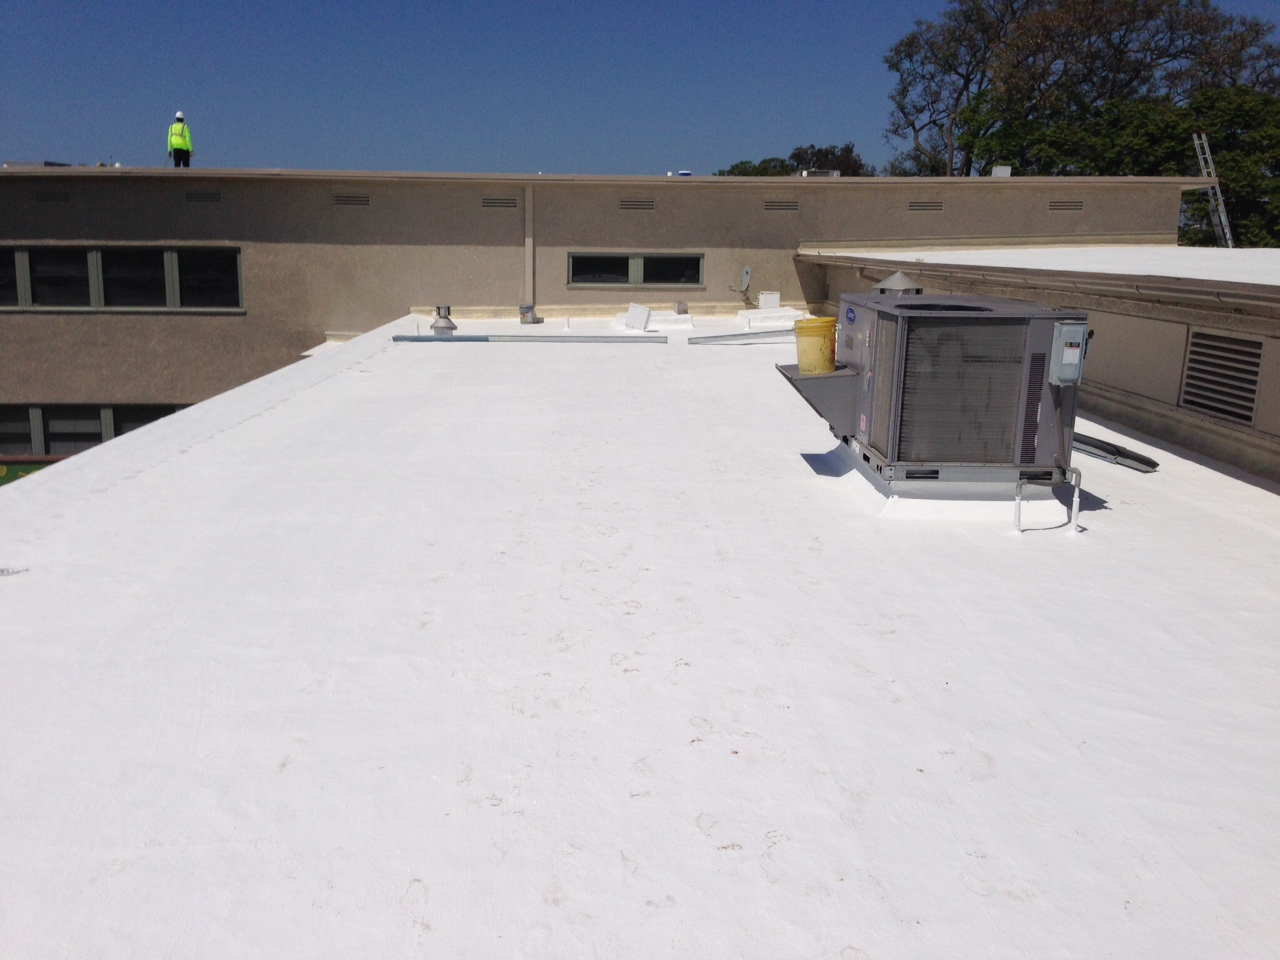 hvac-unit-roof.JPG